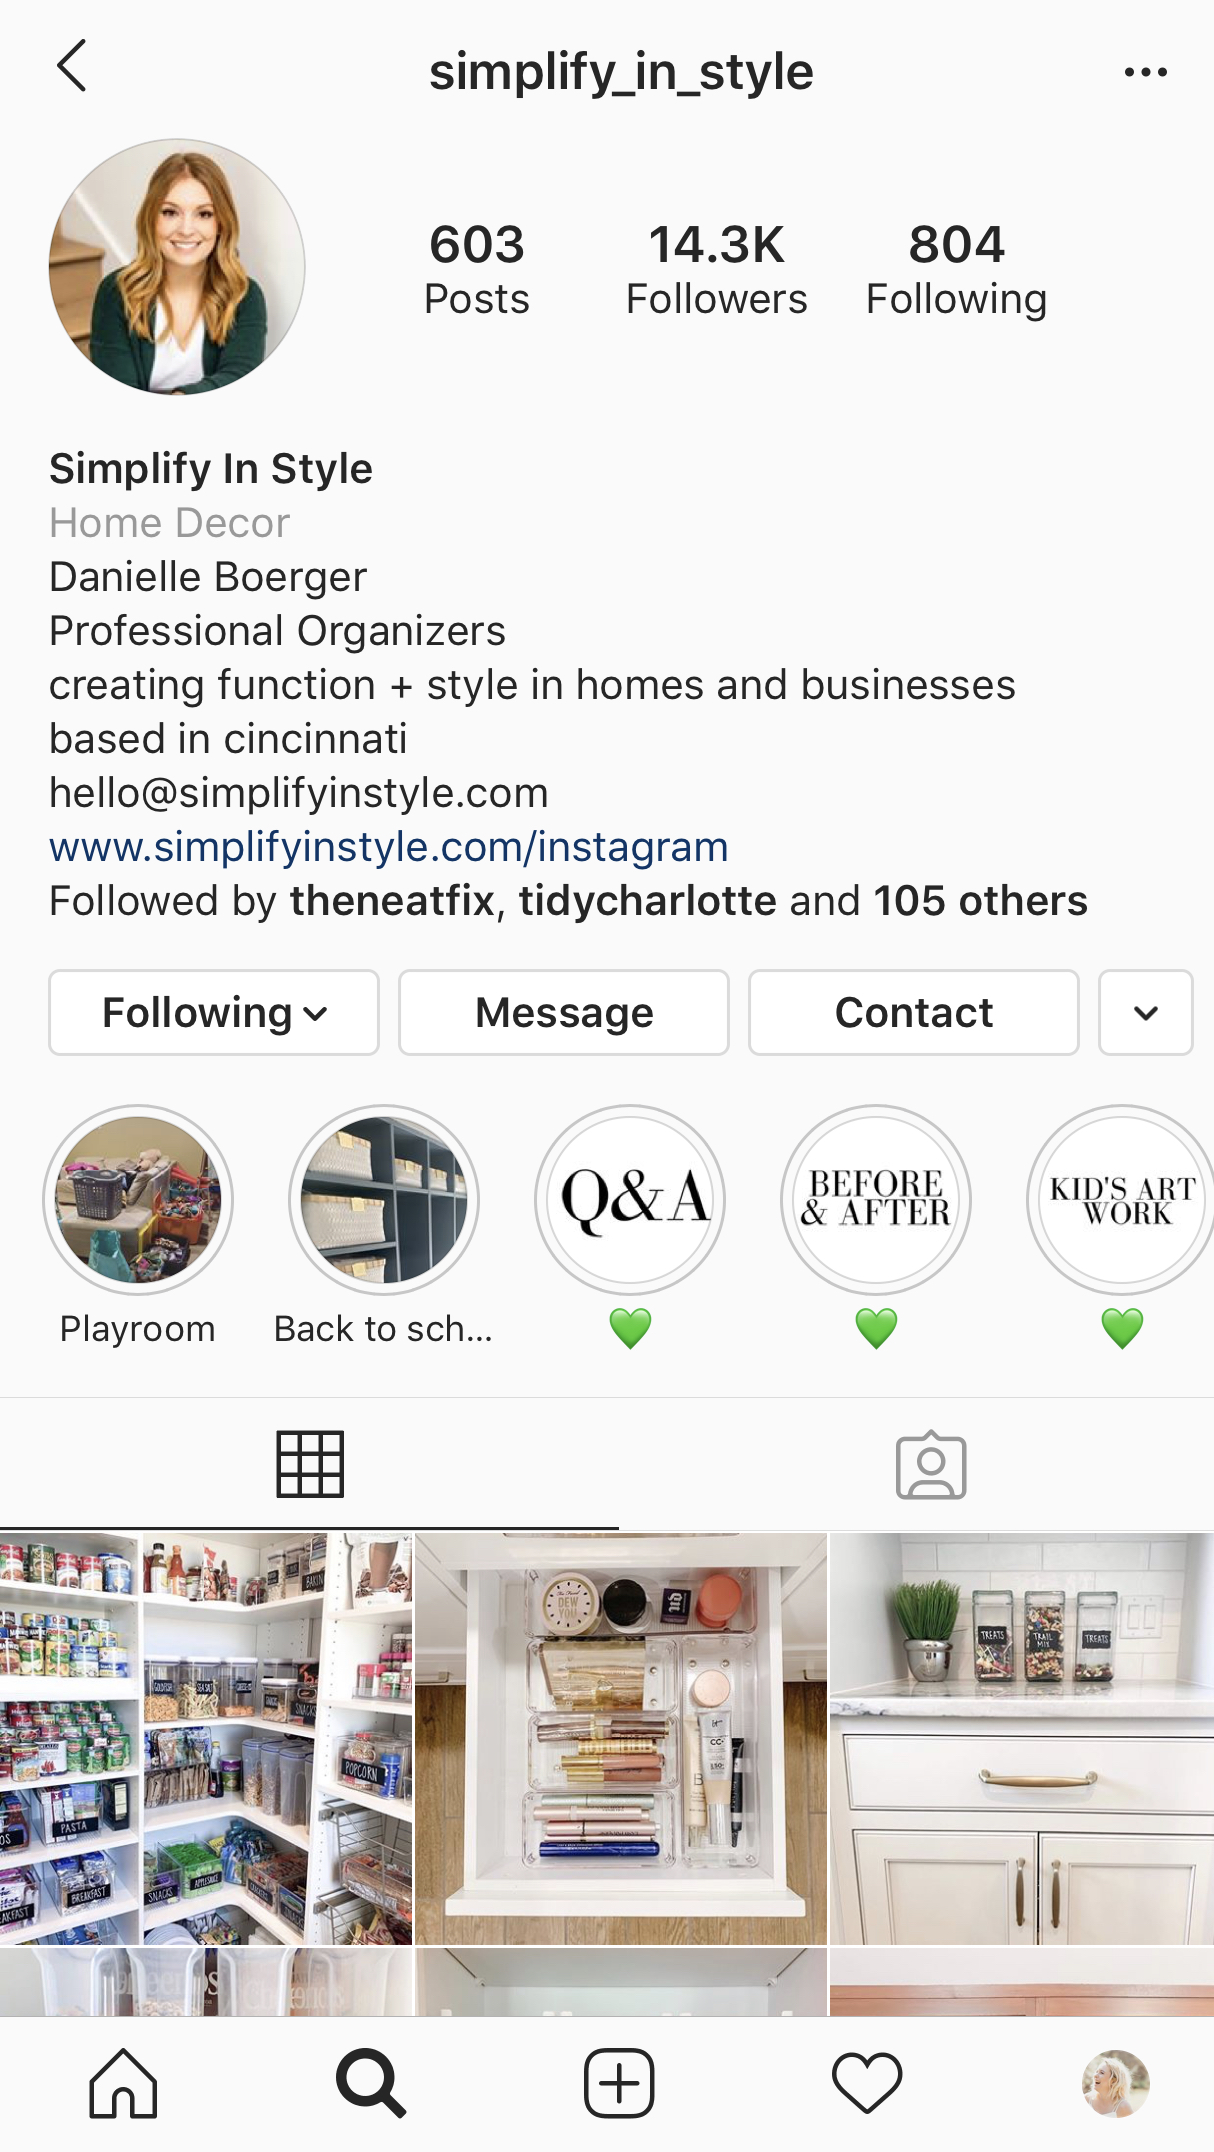 Instagram Marketing Strategy for Professional Organizers